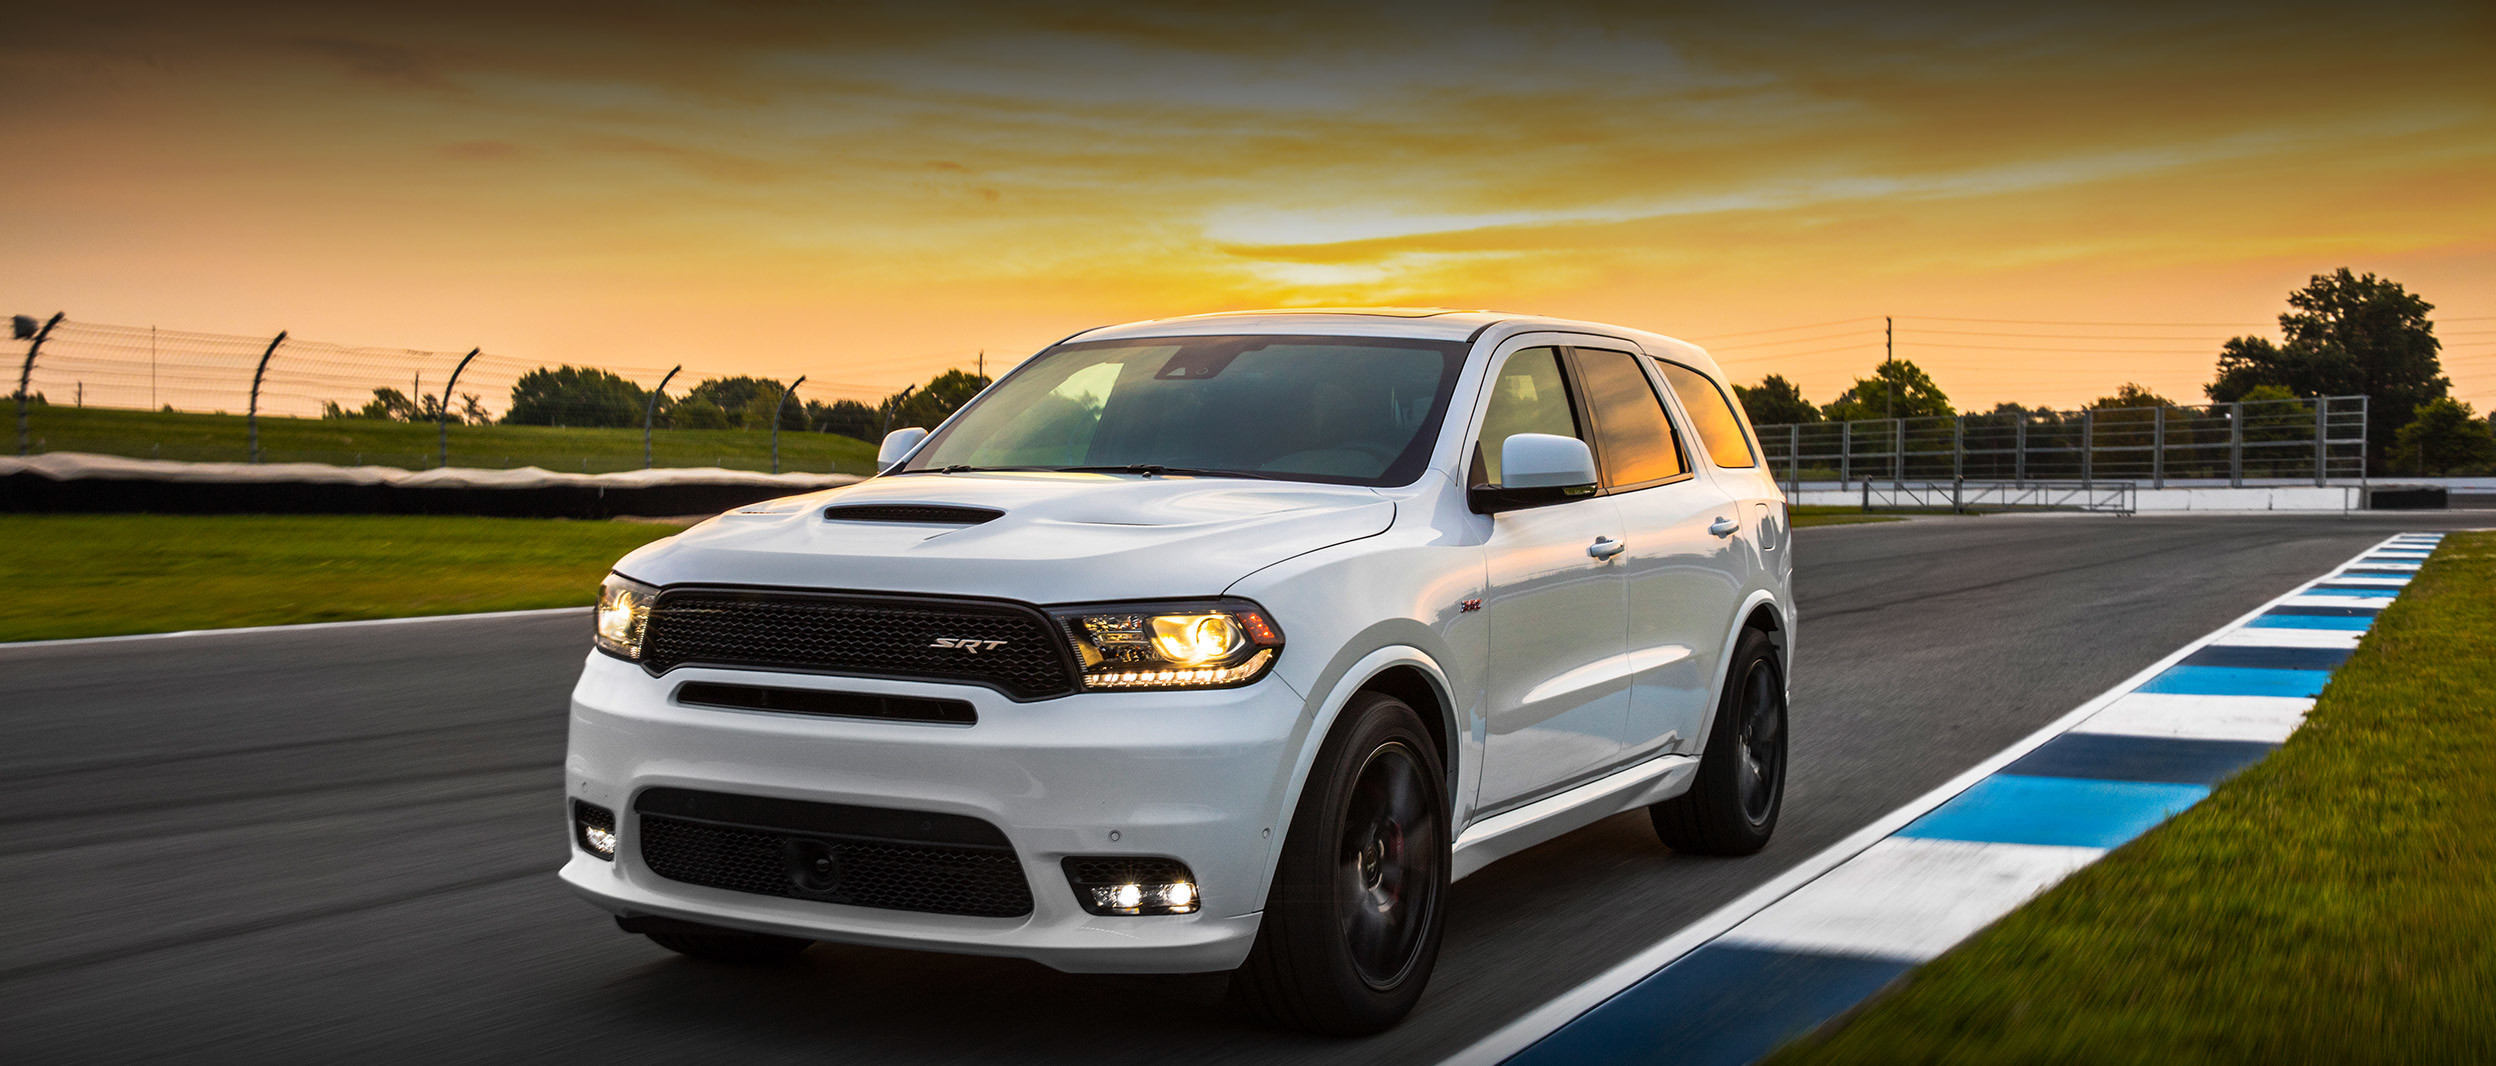 White 2020 Dodge Durango being driven on a race track